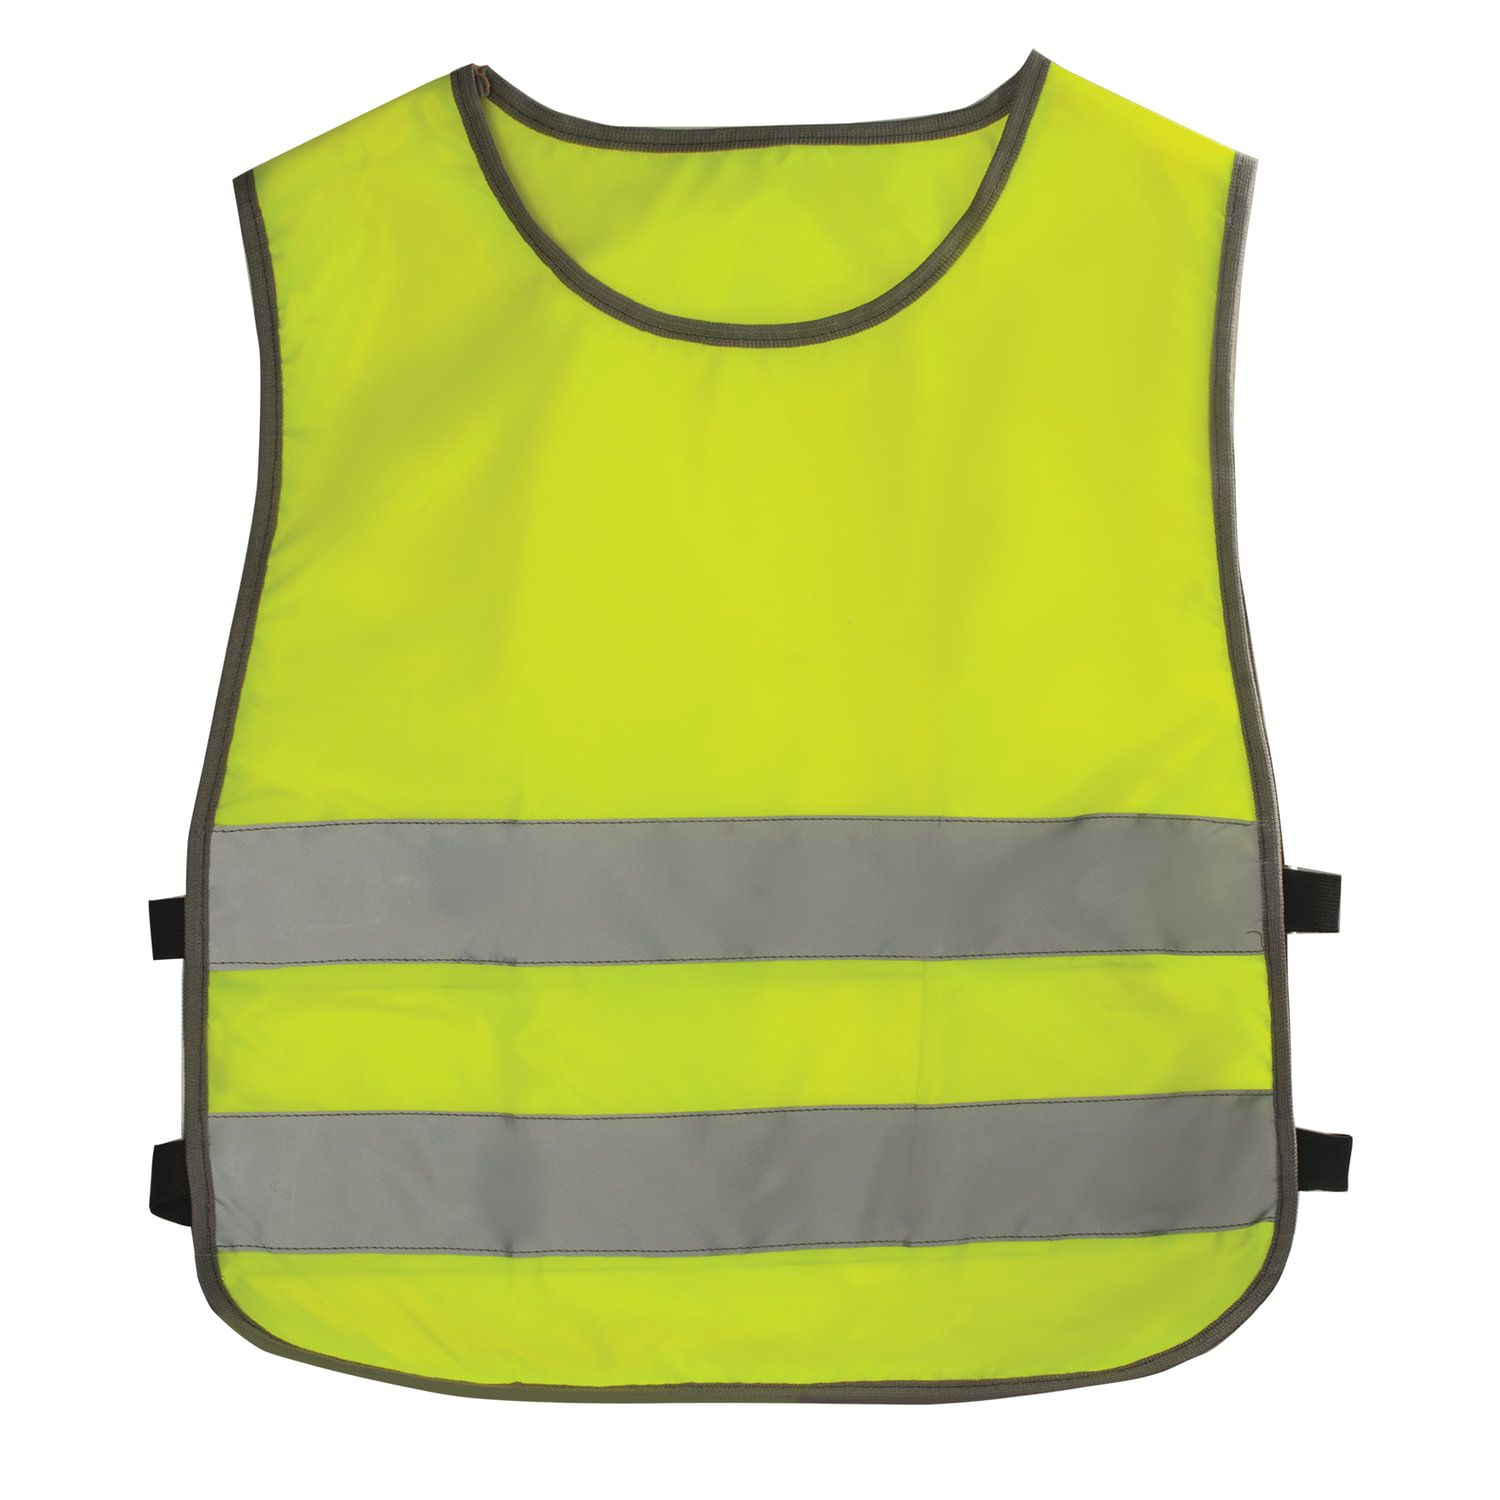 Children's vest REFLECTIVE, size 30-34, height 122-140 cm, 7-10 years old, bright green (lemon)